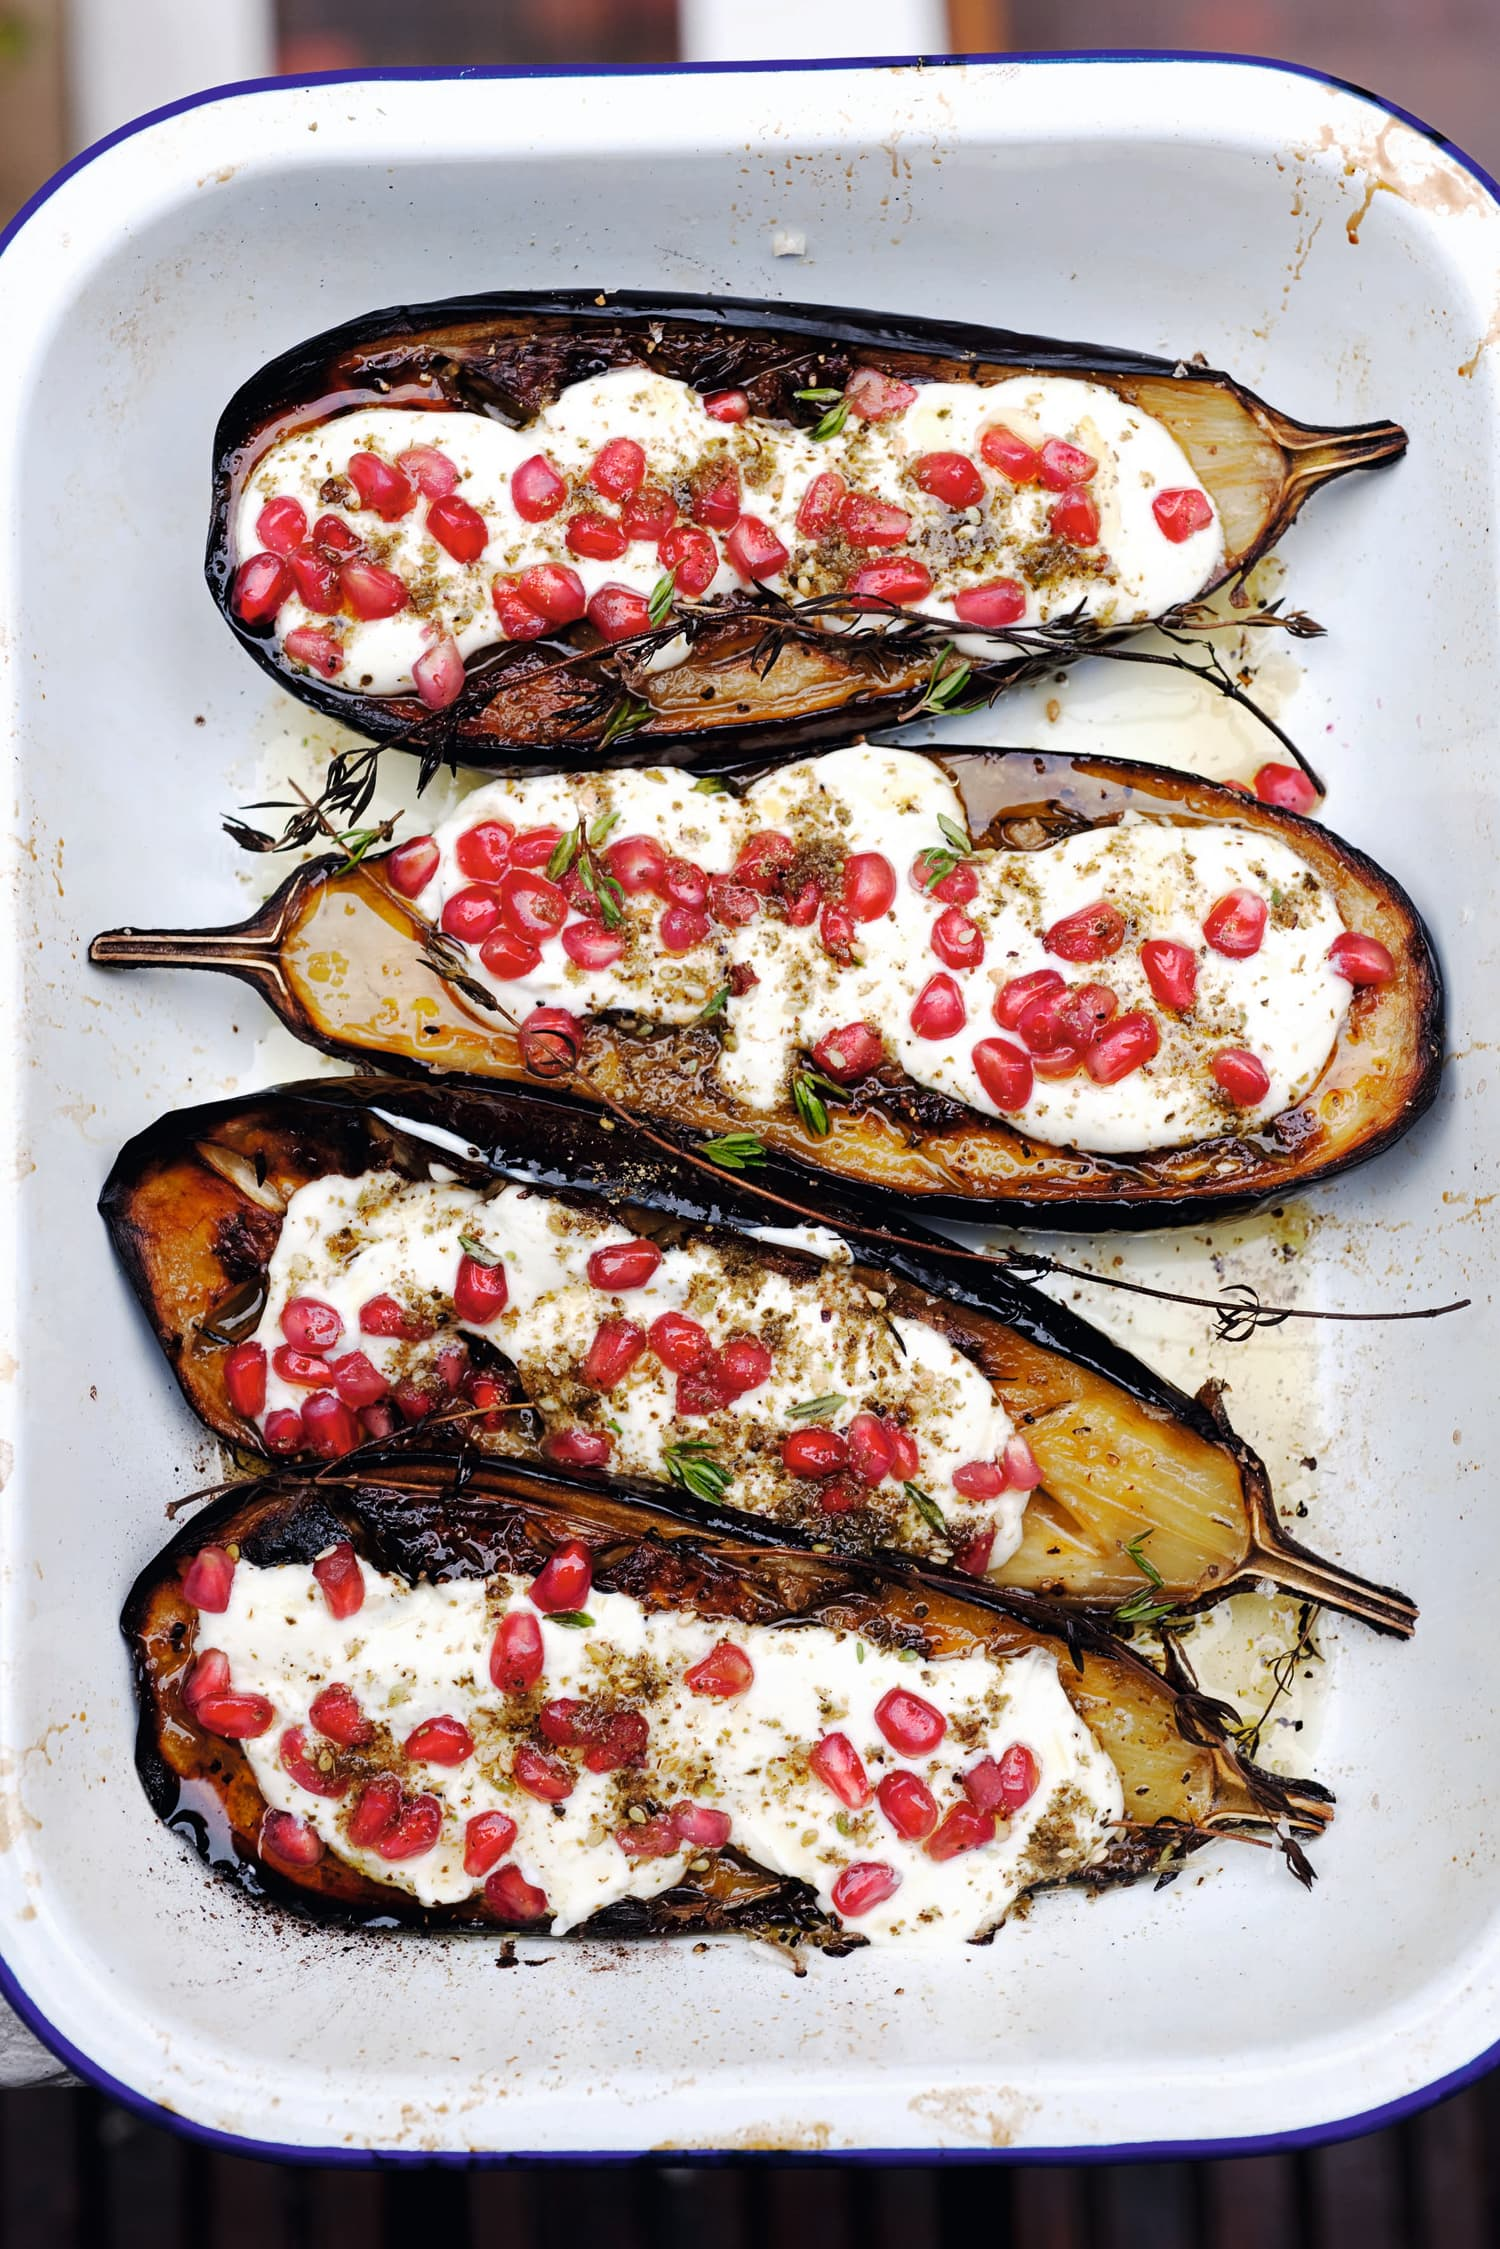 Ottolenghi's Eggplant with Buttermilk Sauce Is One of the Most Iconic Recipes of the Past Decade